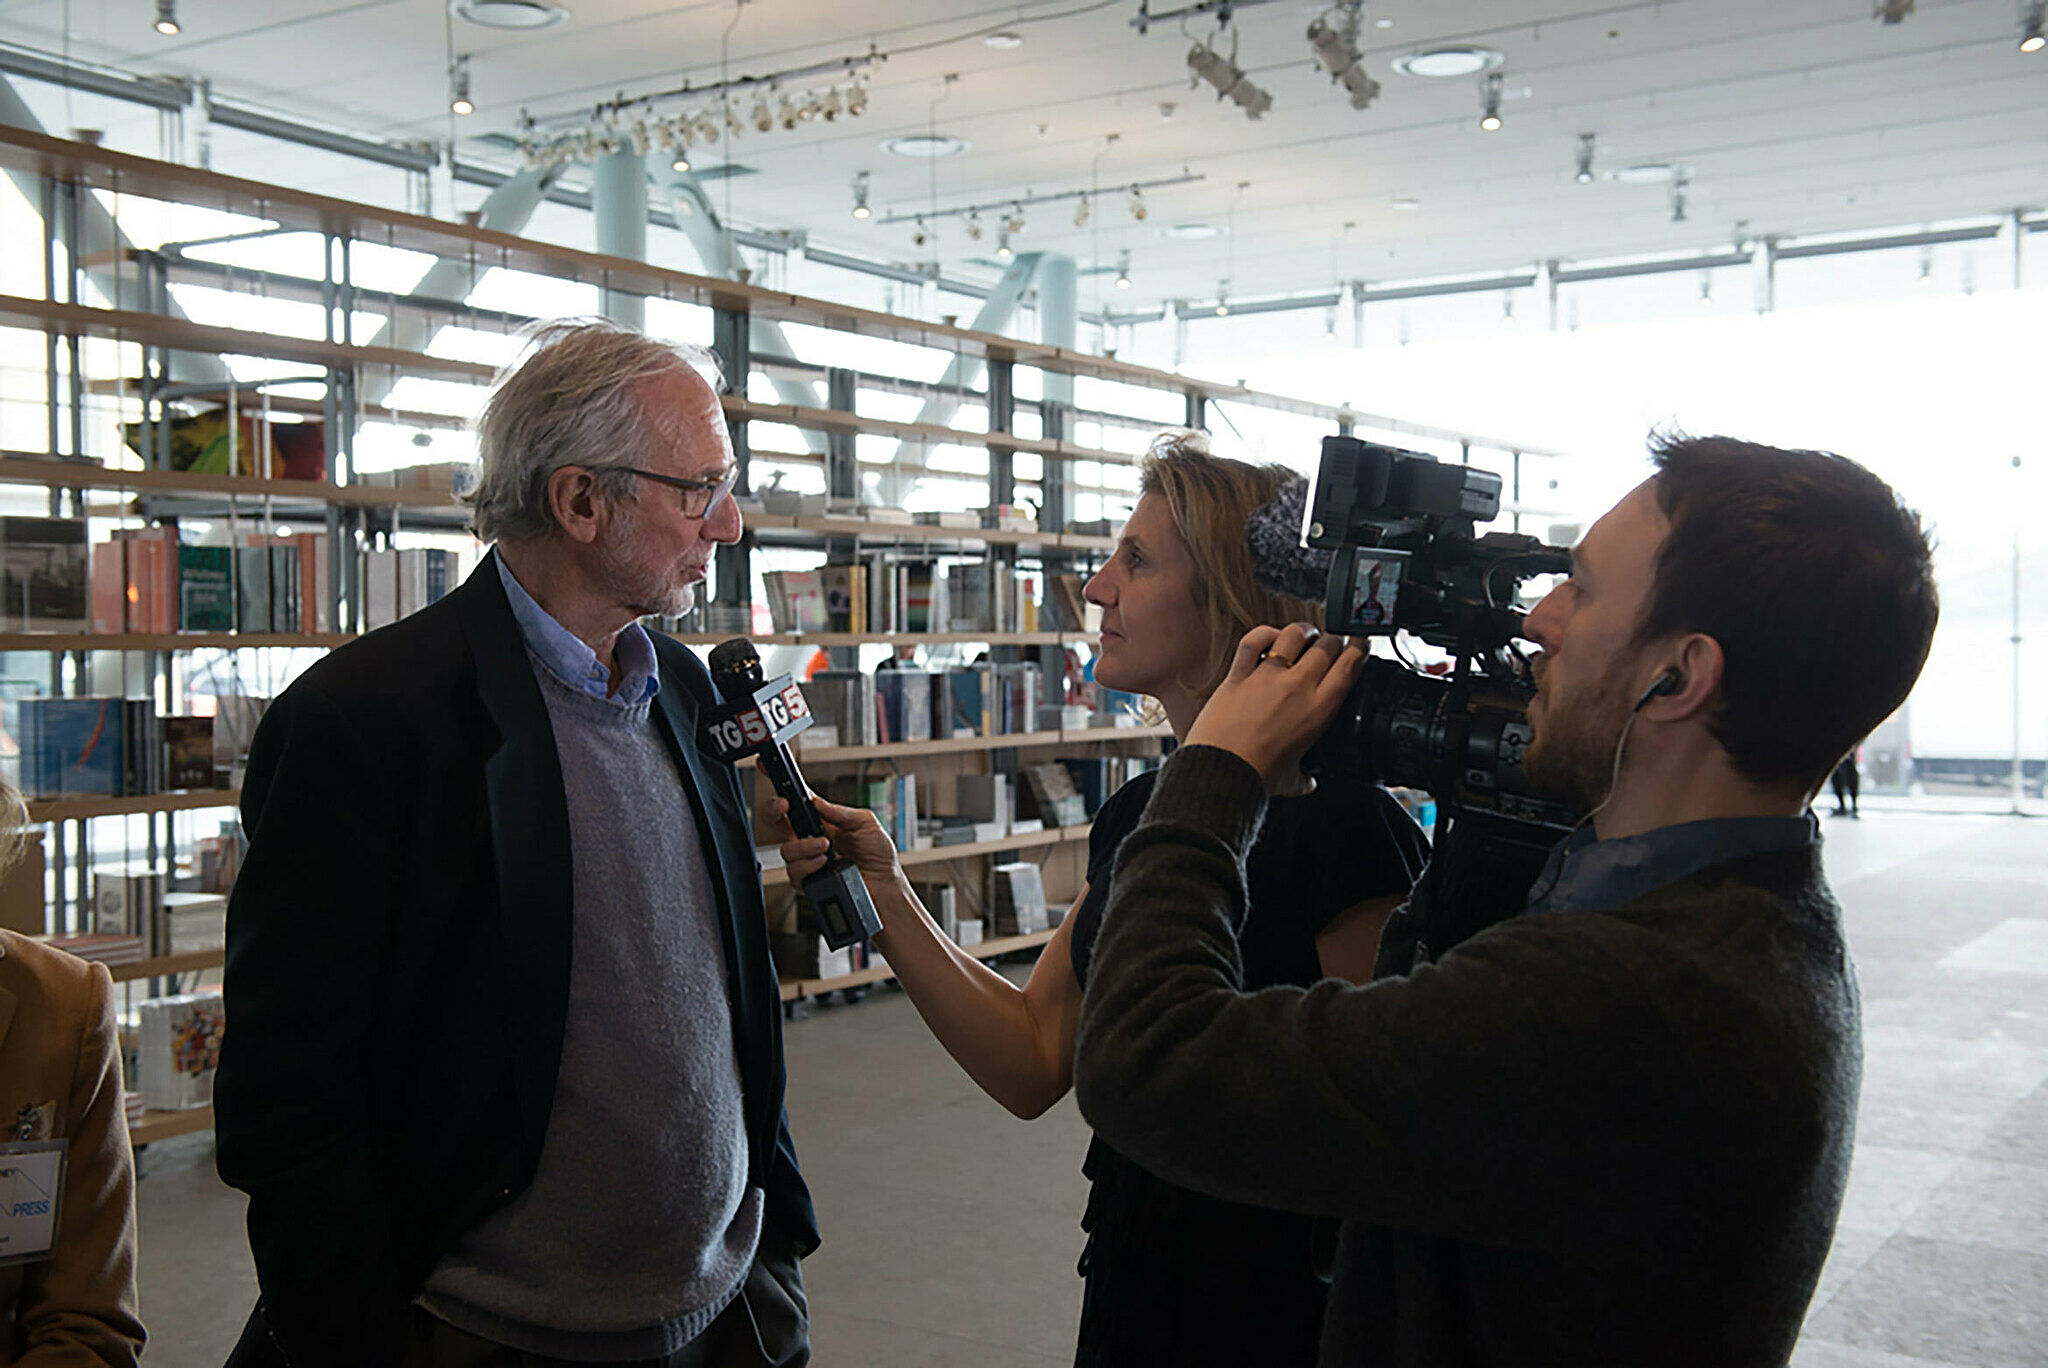 Renzo Piano being interviewed by press.